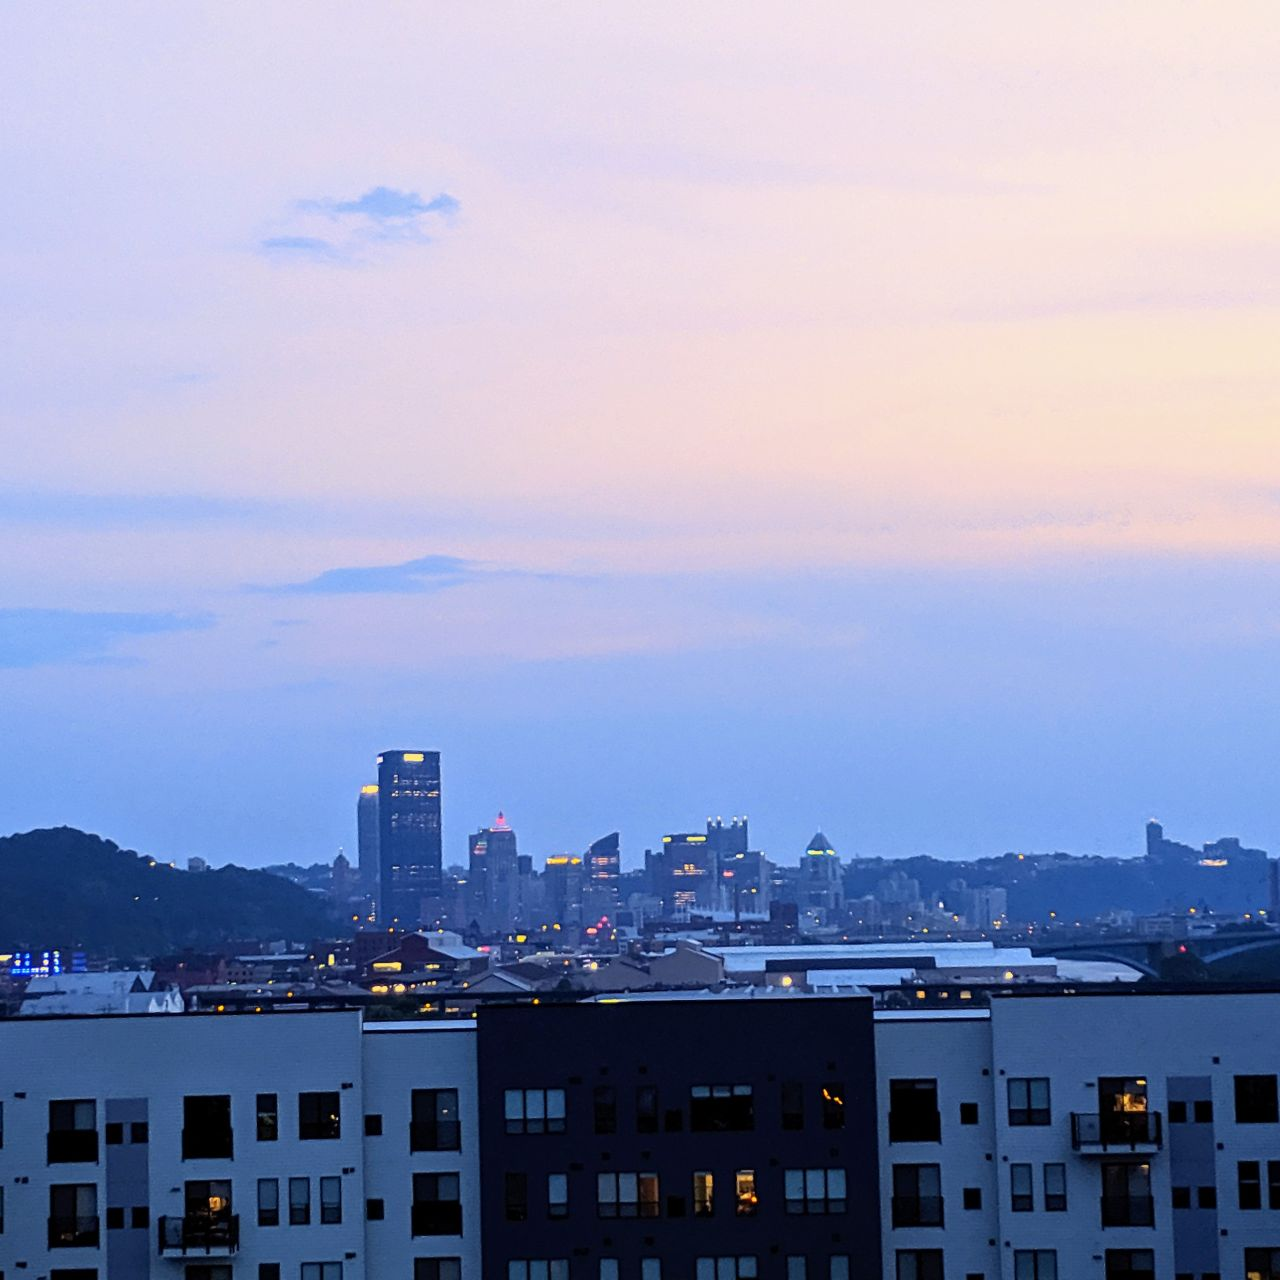 Over Eden | TRYP Hotel Restaurant - Pittsburgh, PA | OpenTable